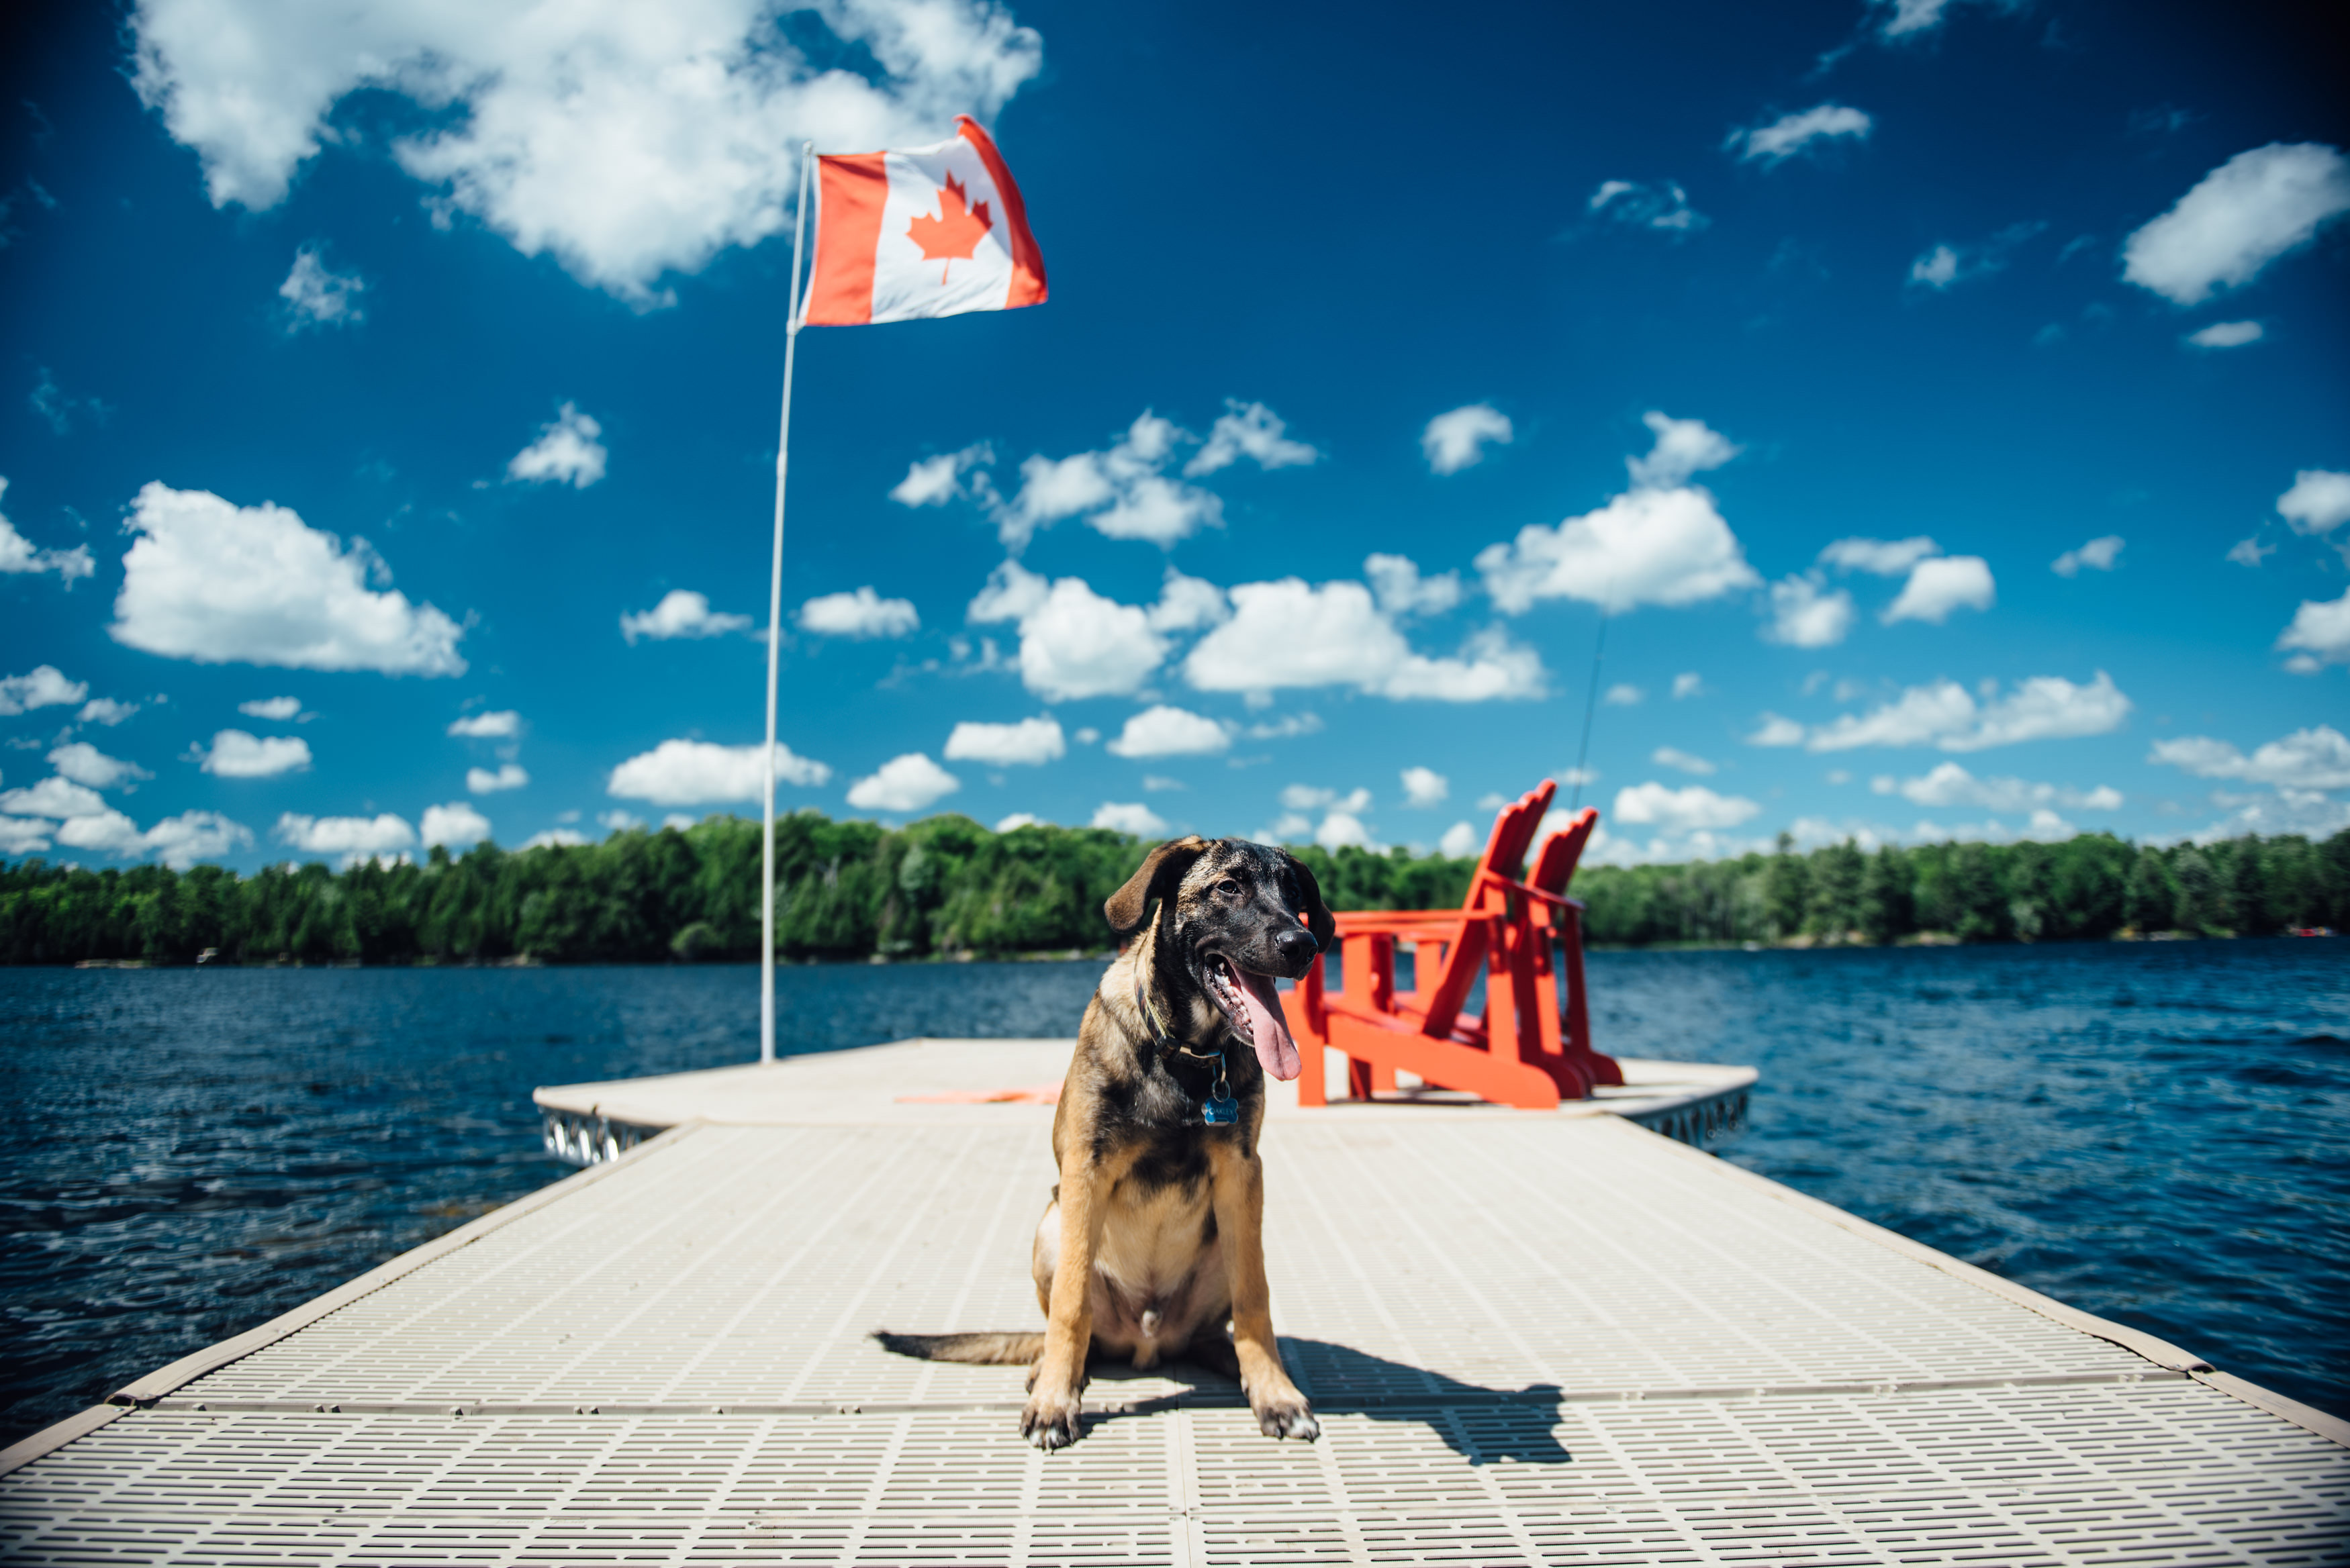 Dog Siting on ThruFlow dock with muskoka chairs and Canadian Flag